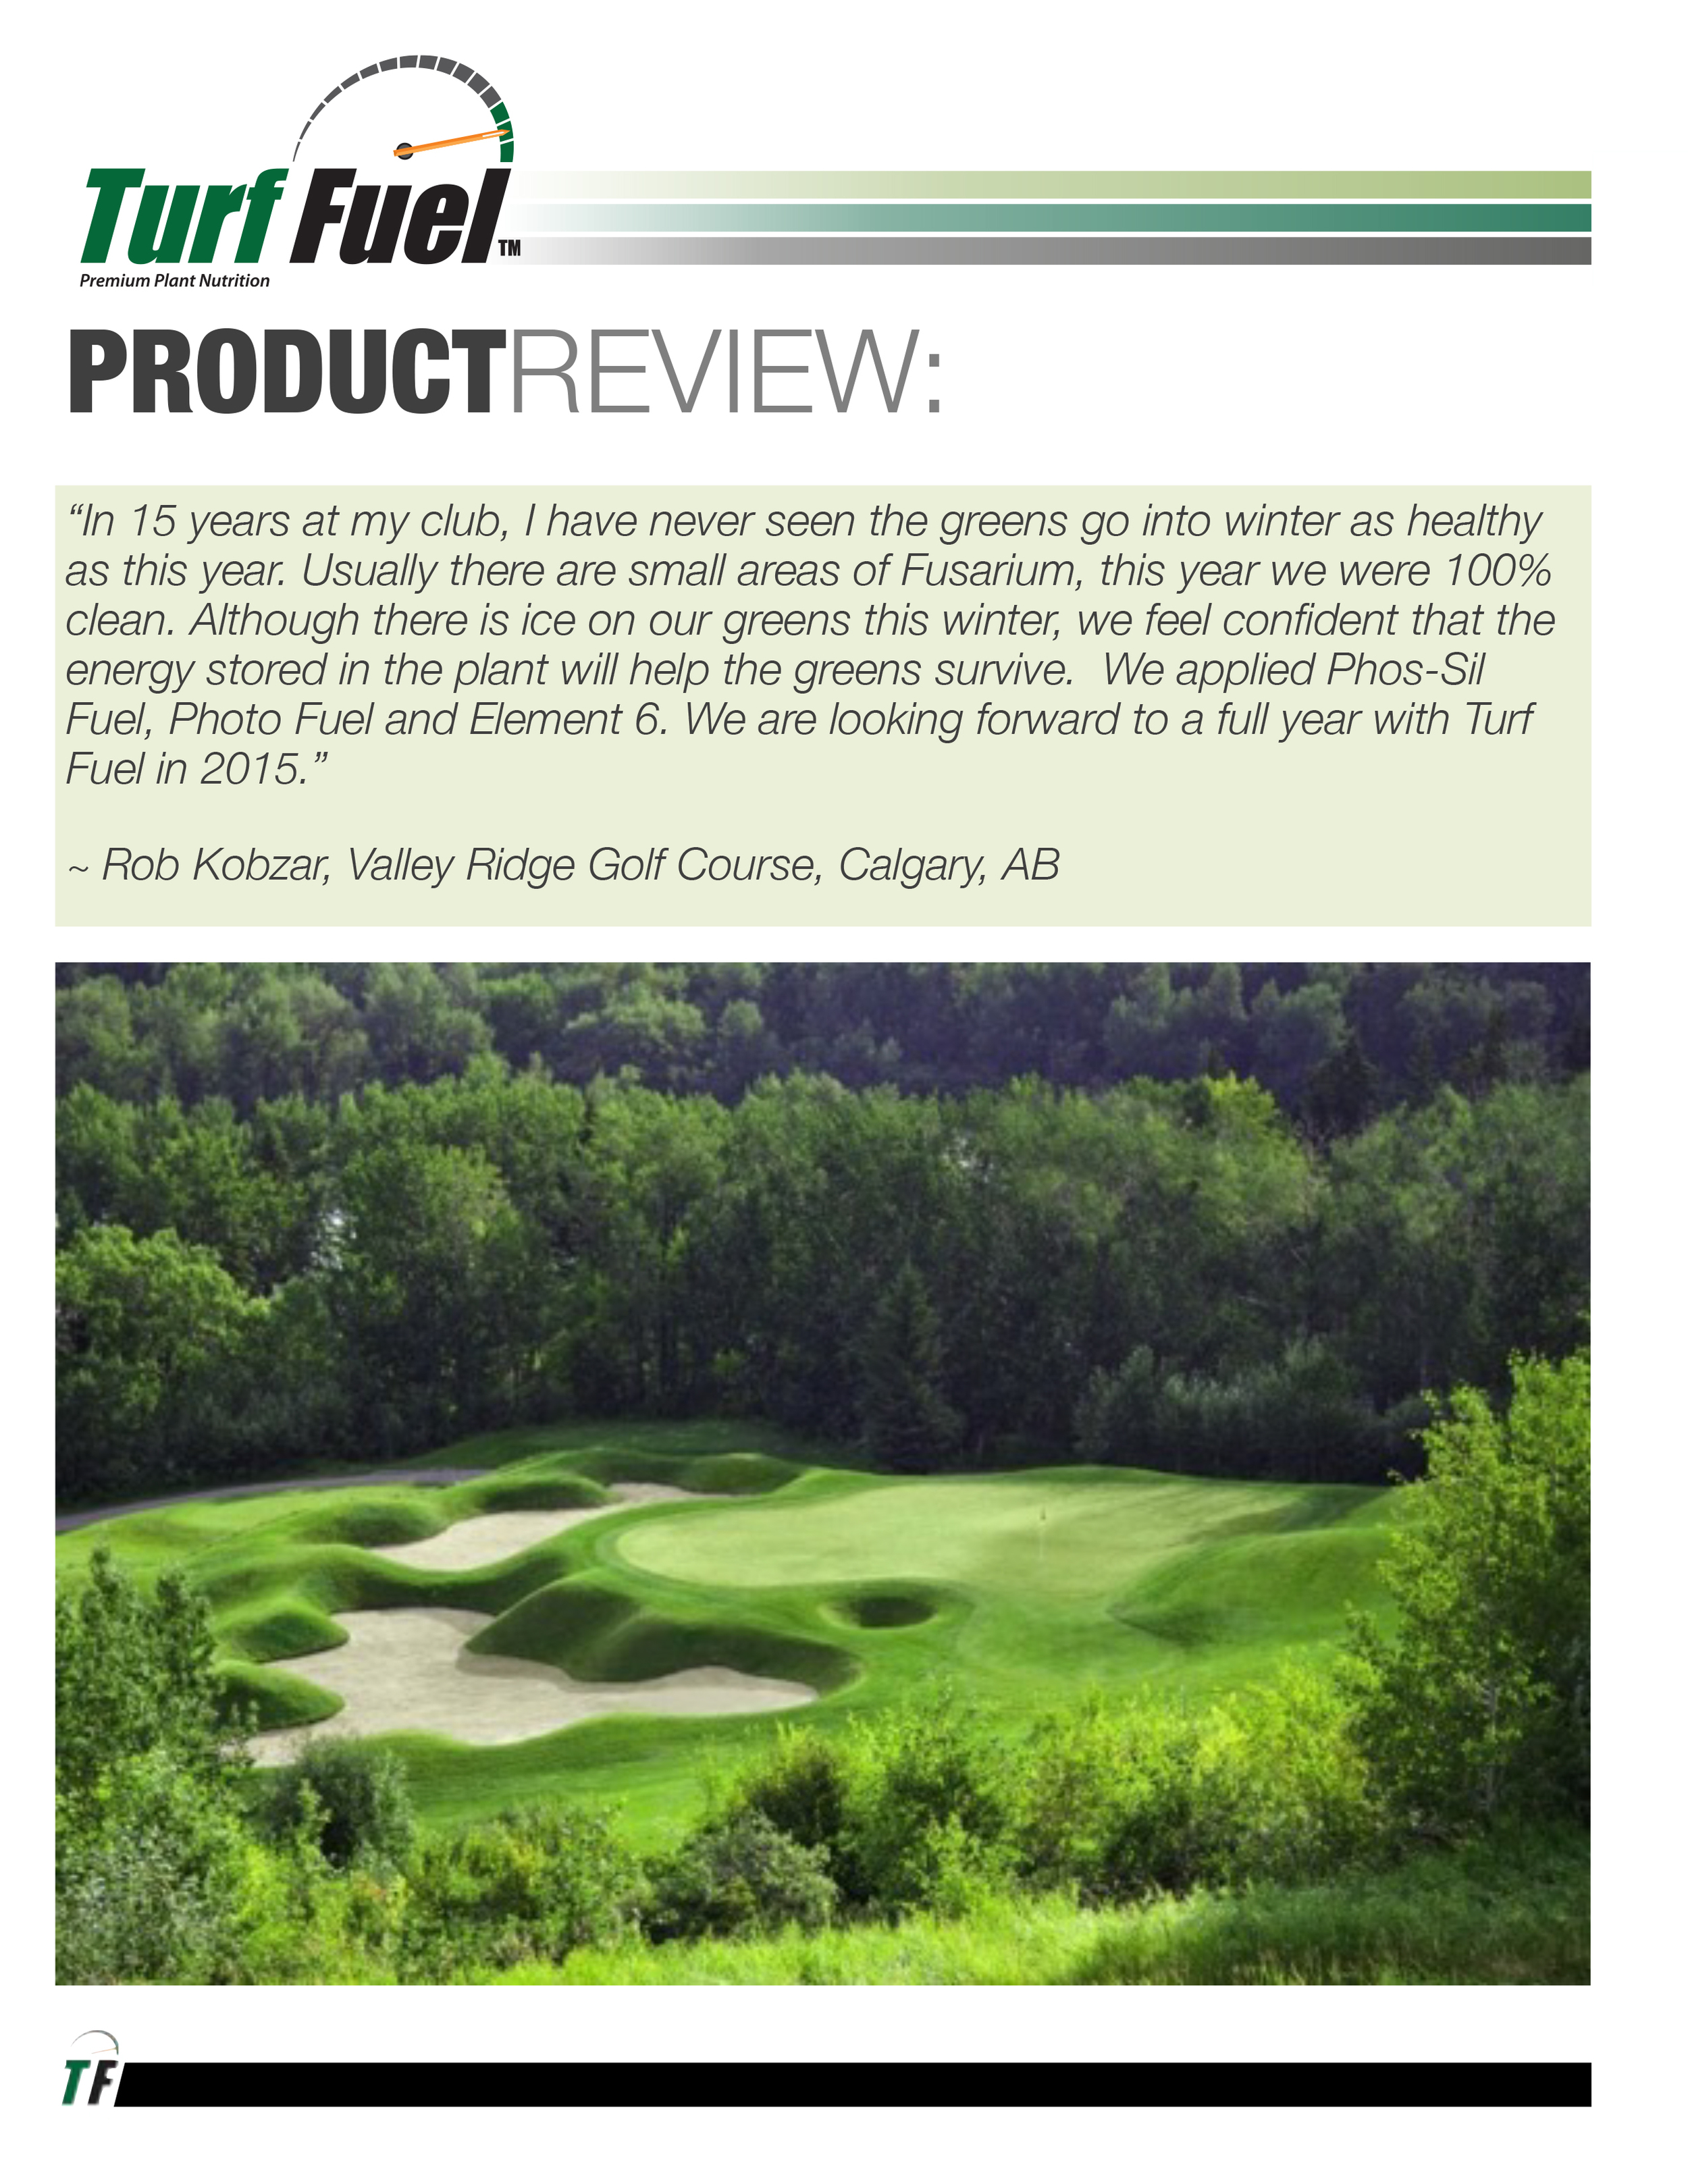 PRODUCT REVIEW Valley Ridge